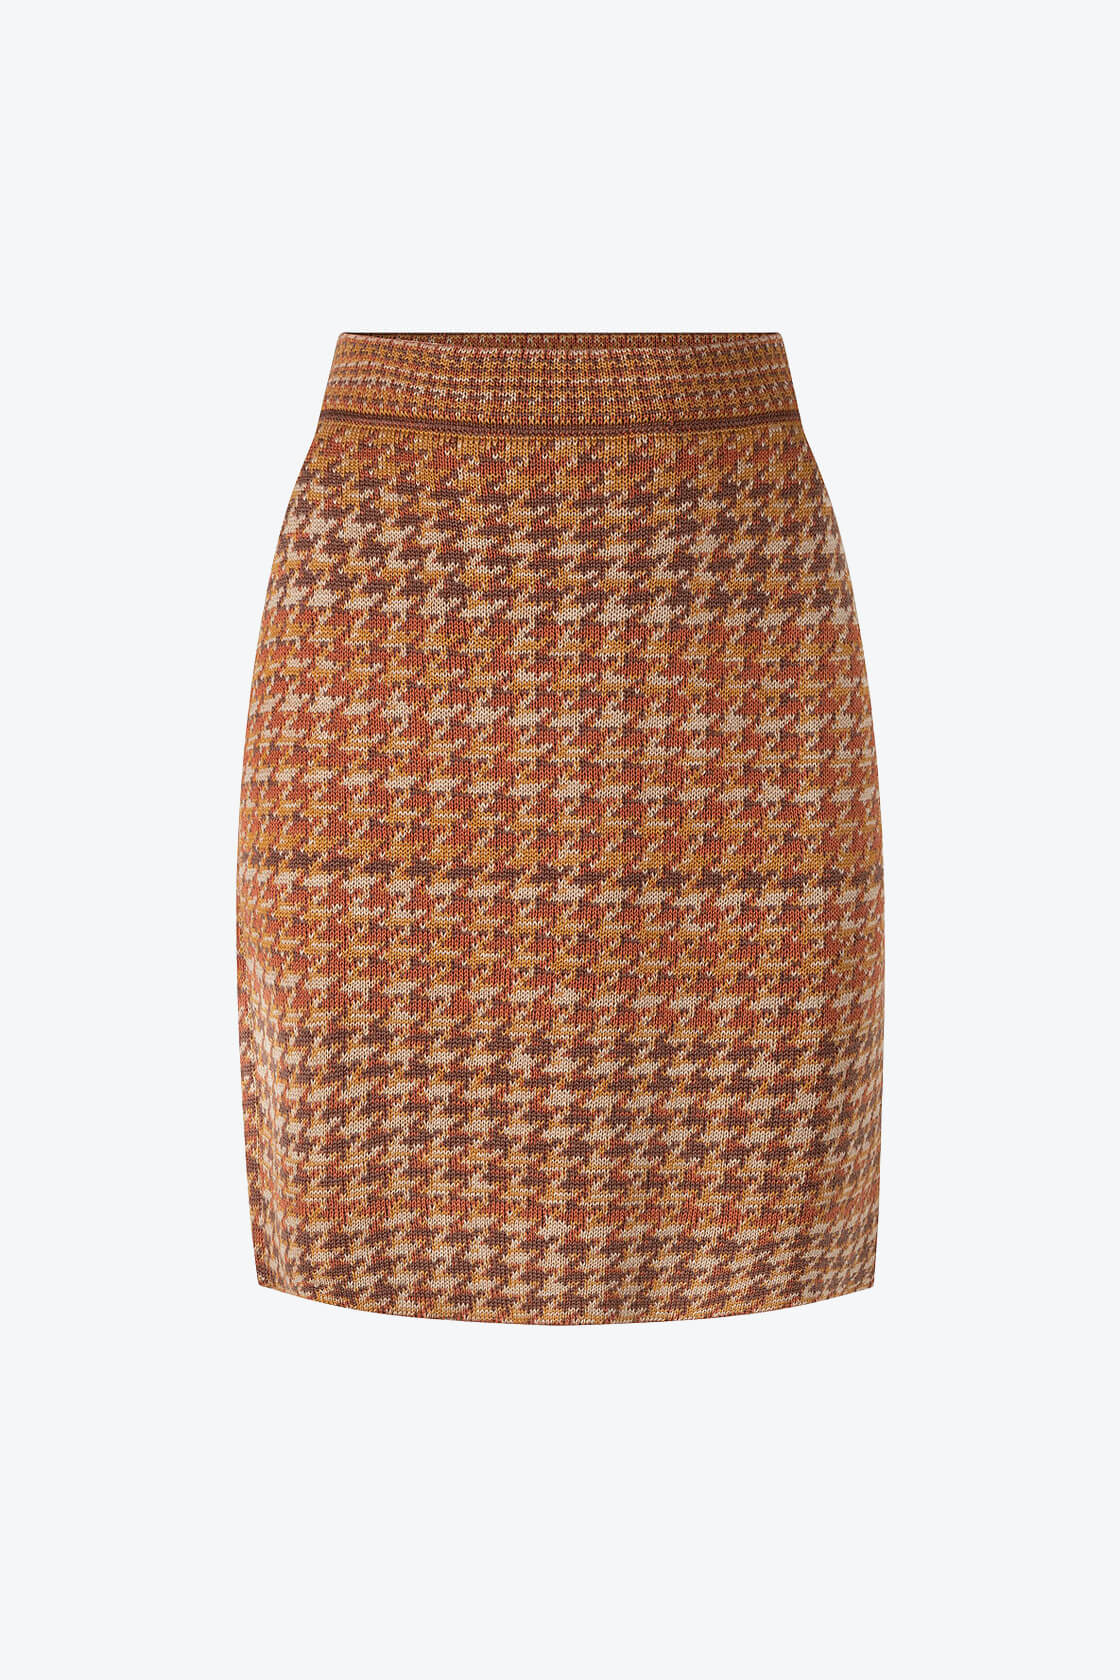 Knitted Knee Length Pencil Skirt In Pieds De Poule Pattern Tweed Ginger